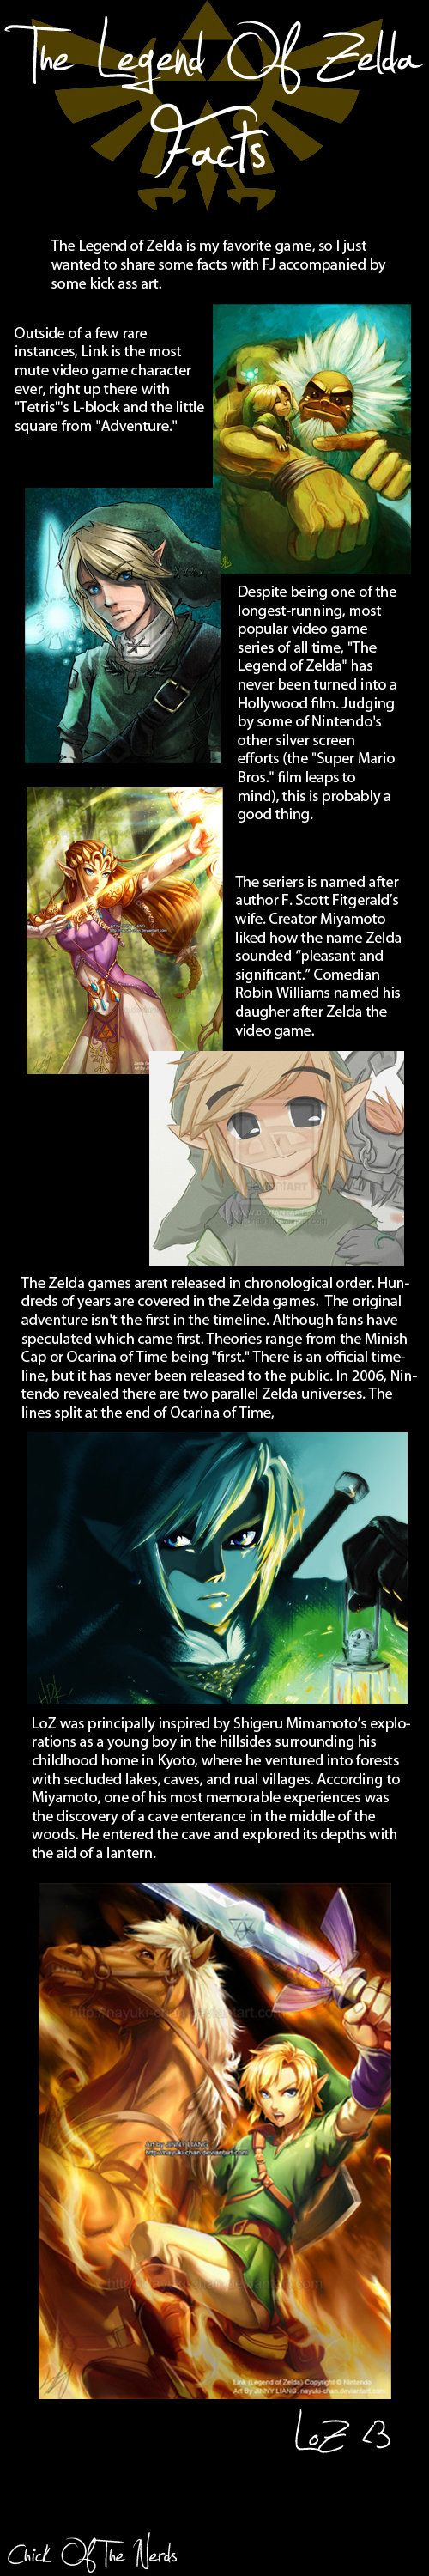 """Zelda Facts - of course the timeline has been more or less sorted out via """"Hyrule Historia"""" (which I have yet to get boo hoo)"""